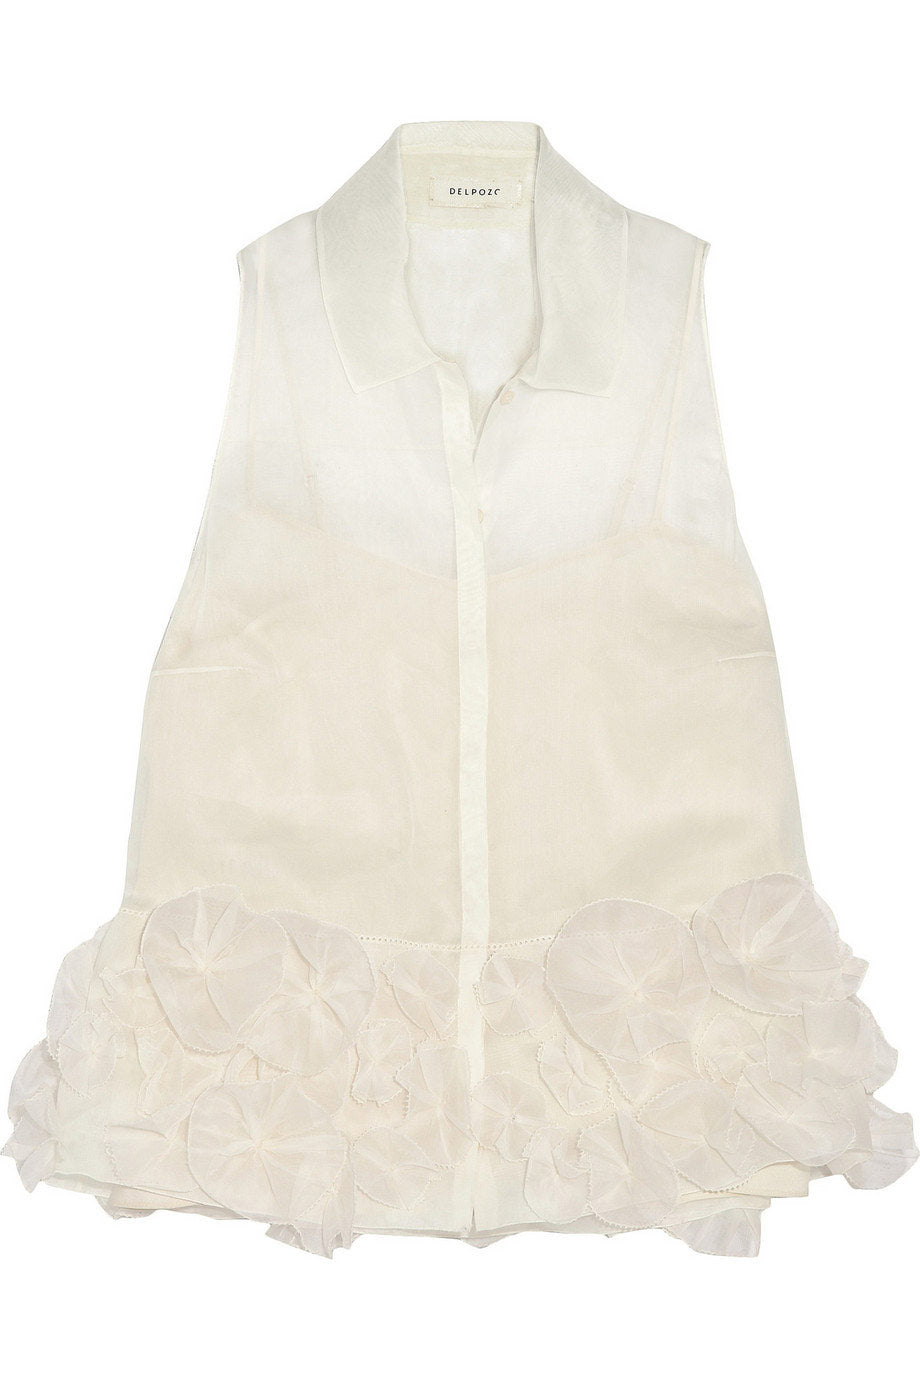 Delpozo Floral Applique Cream Organdy Sleeveless Blouse / Sz 38